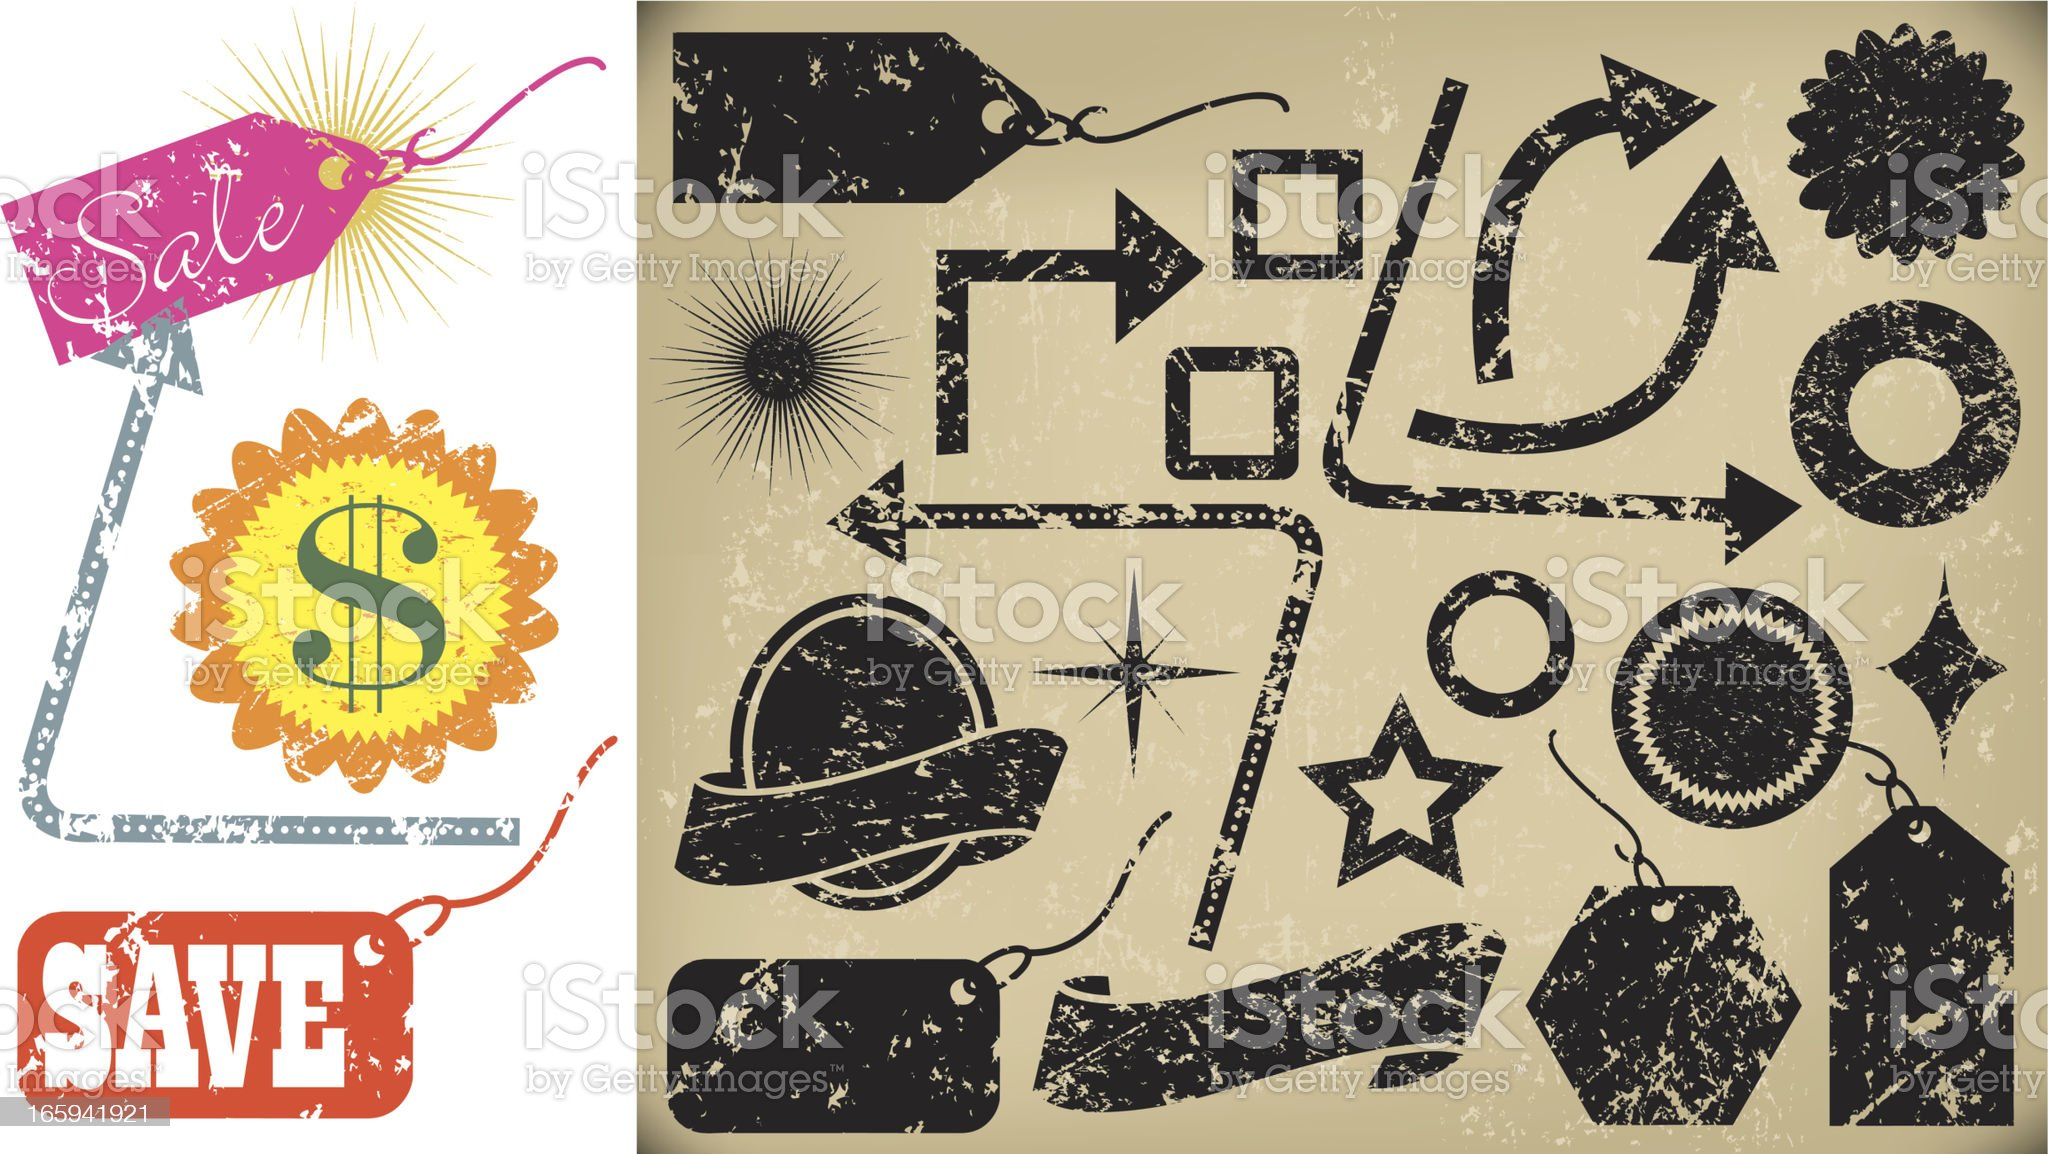 Hang Tags - Grunge Stars, Stamps and Arrows royalty-free stock vector art